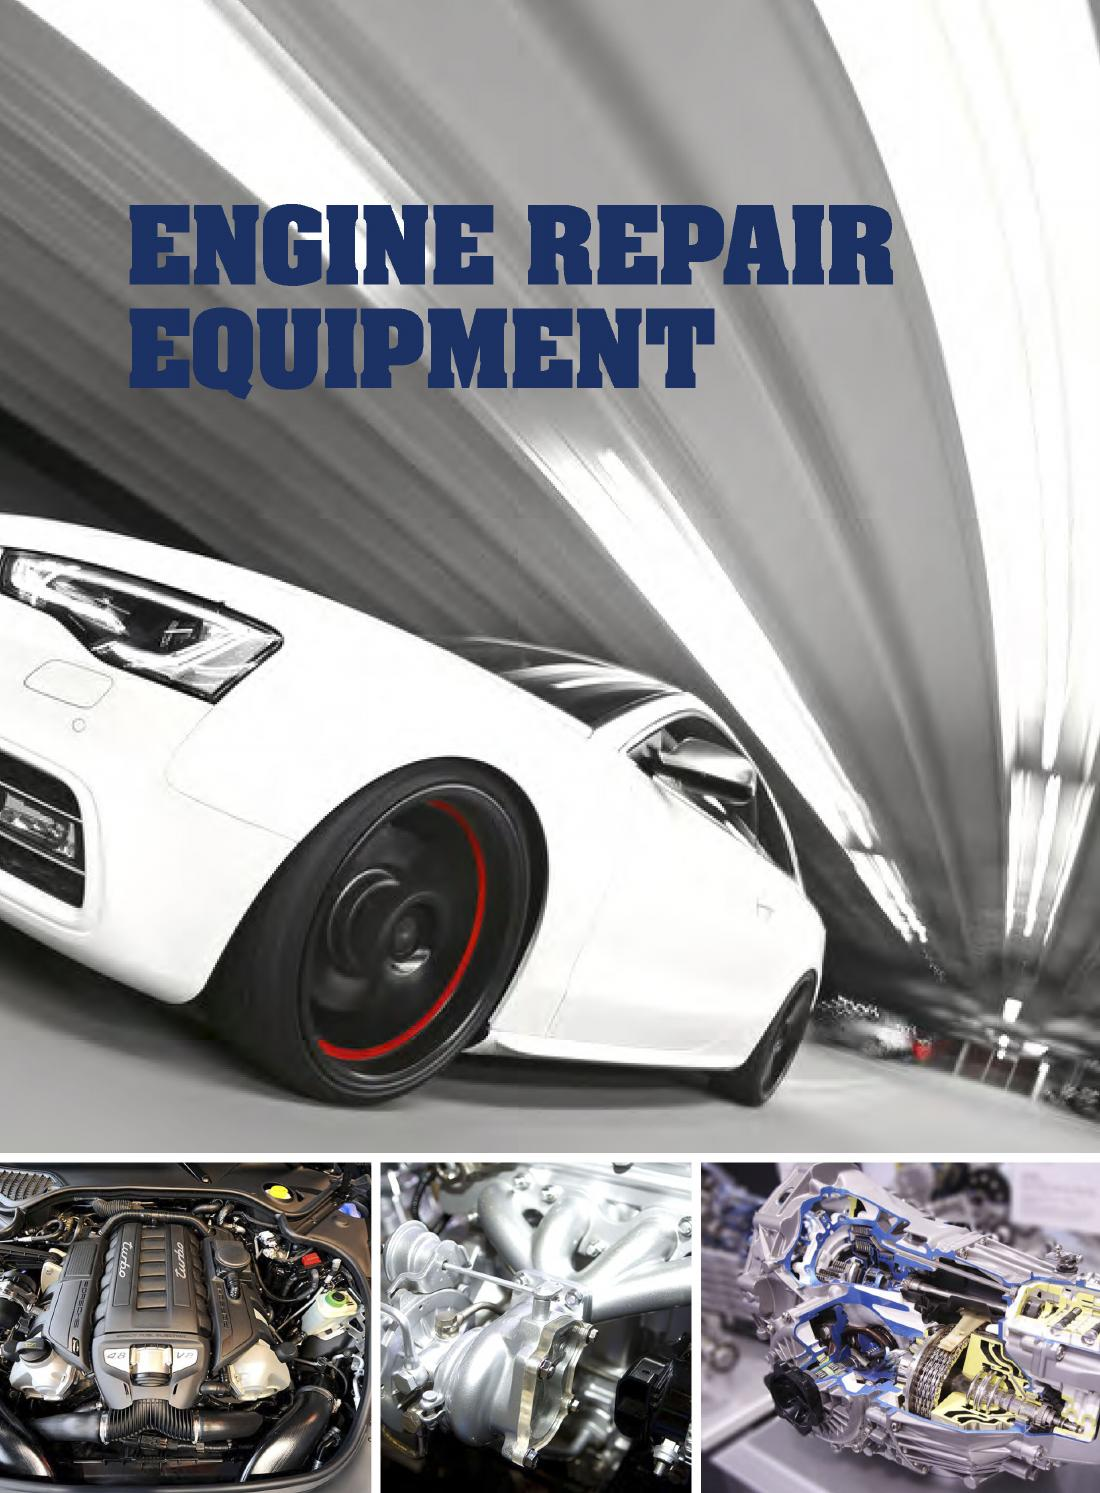 Engine Repair Equipment For Auto Car Motor Sylvan By Beijing Electronic Filters Eg1003 Automotive Co Ltd Issuu